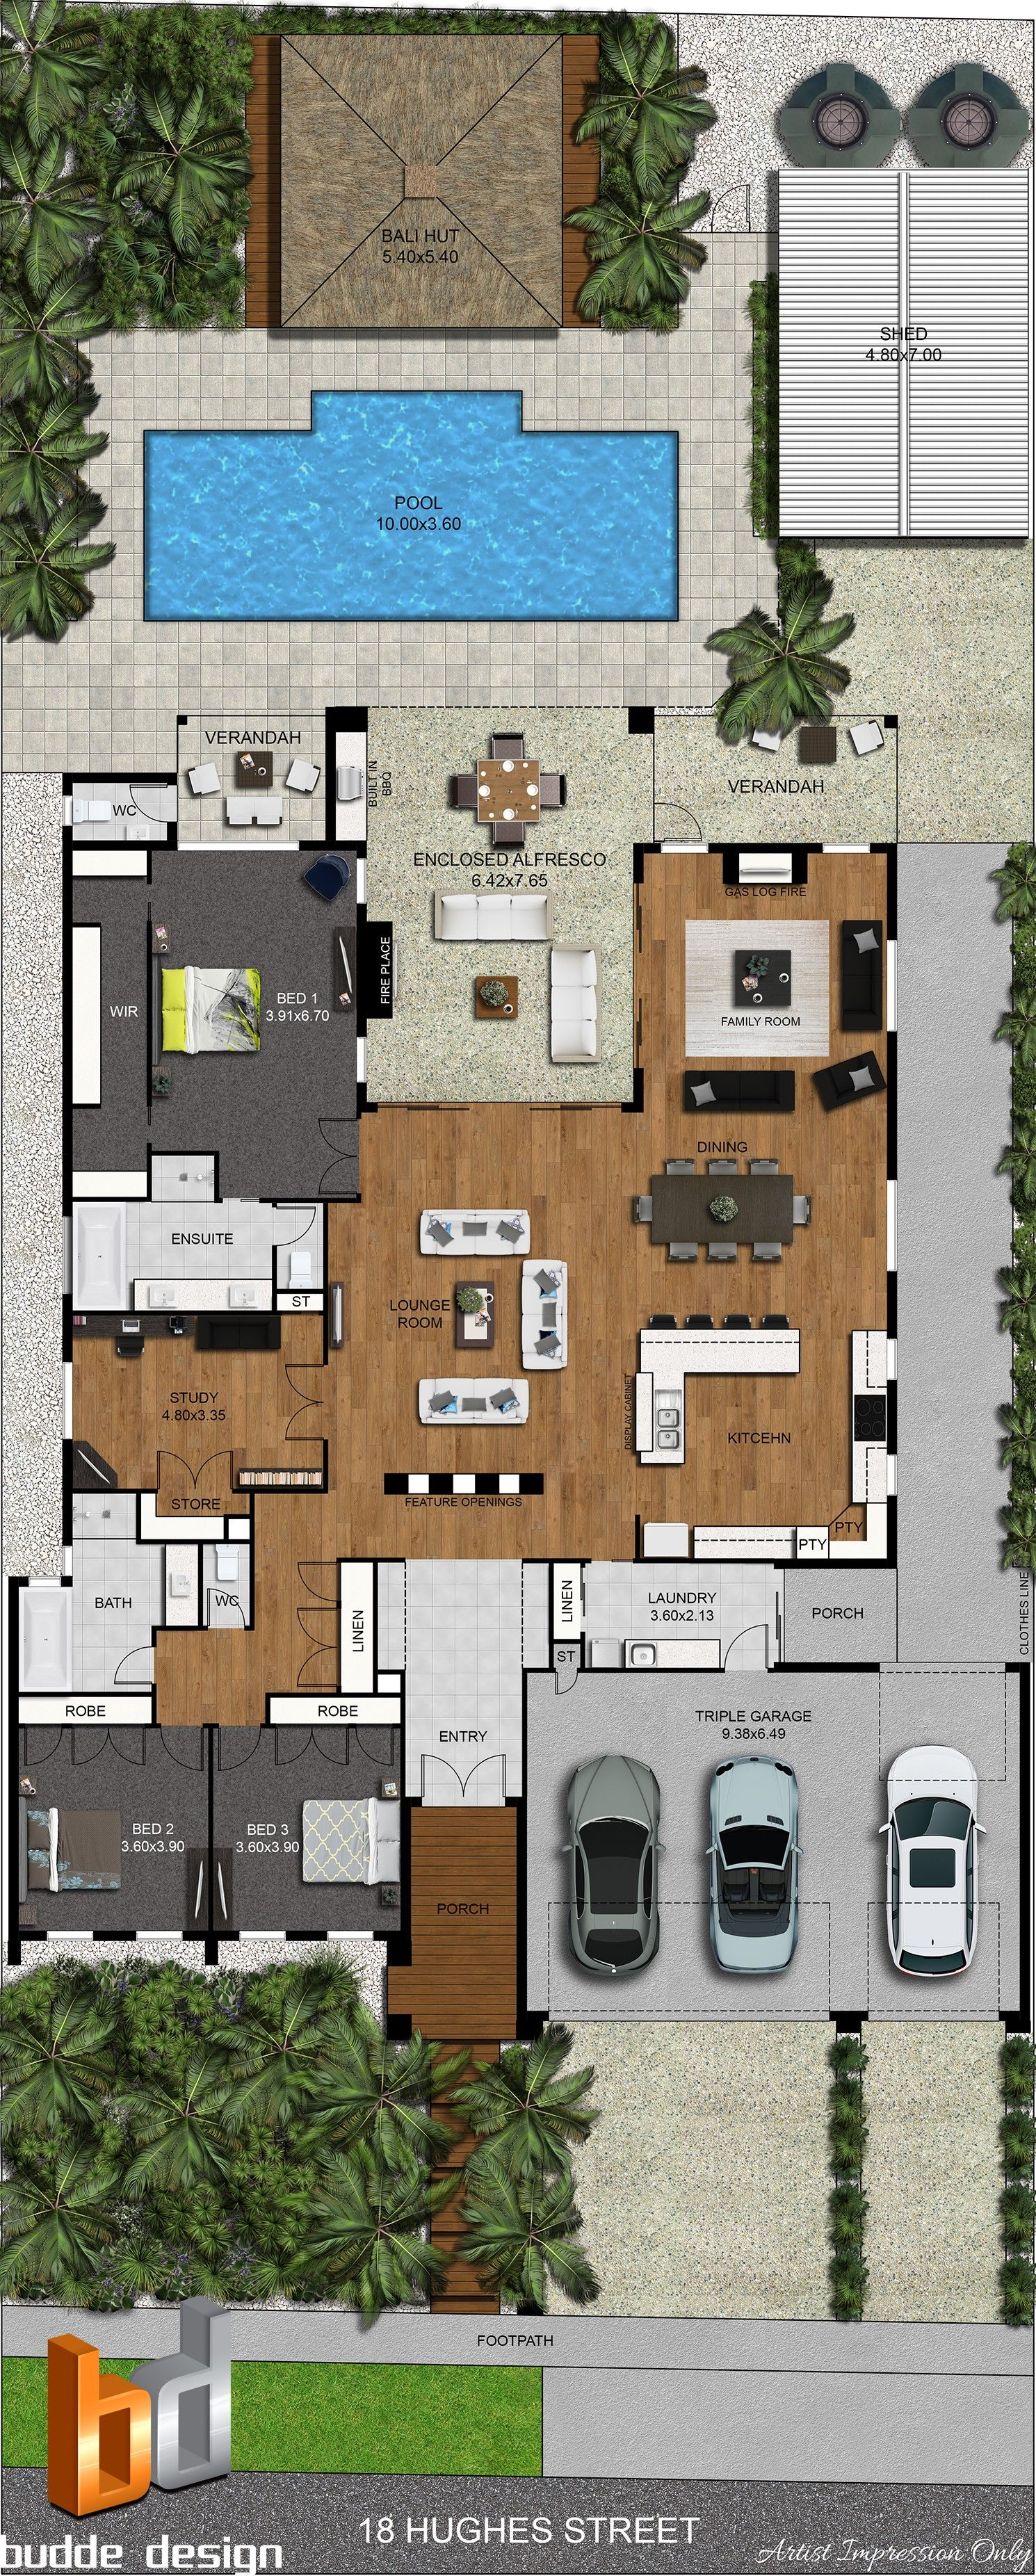 Shed Plans Shed Plans My Shed Plans 2d Colour Floor Plan And 2d Colour Site Plan Image Used For Real Estate Marke Australia House House Plans Bali Huts